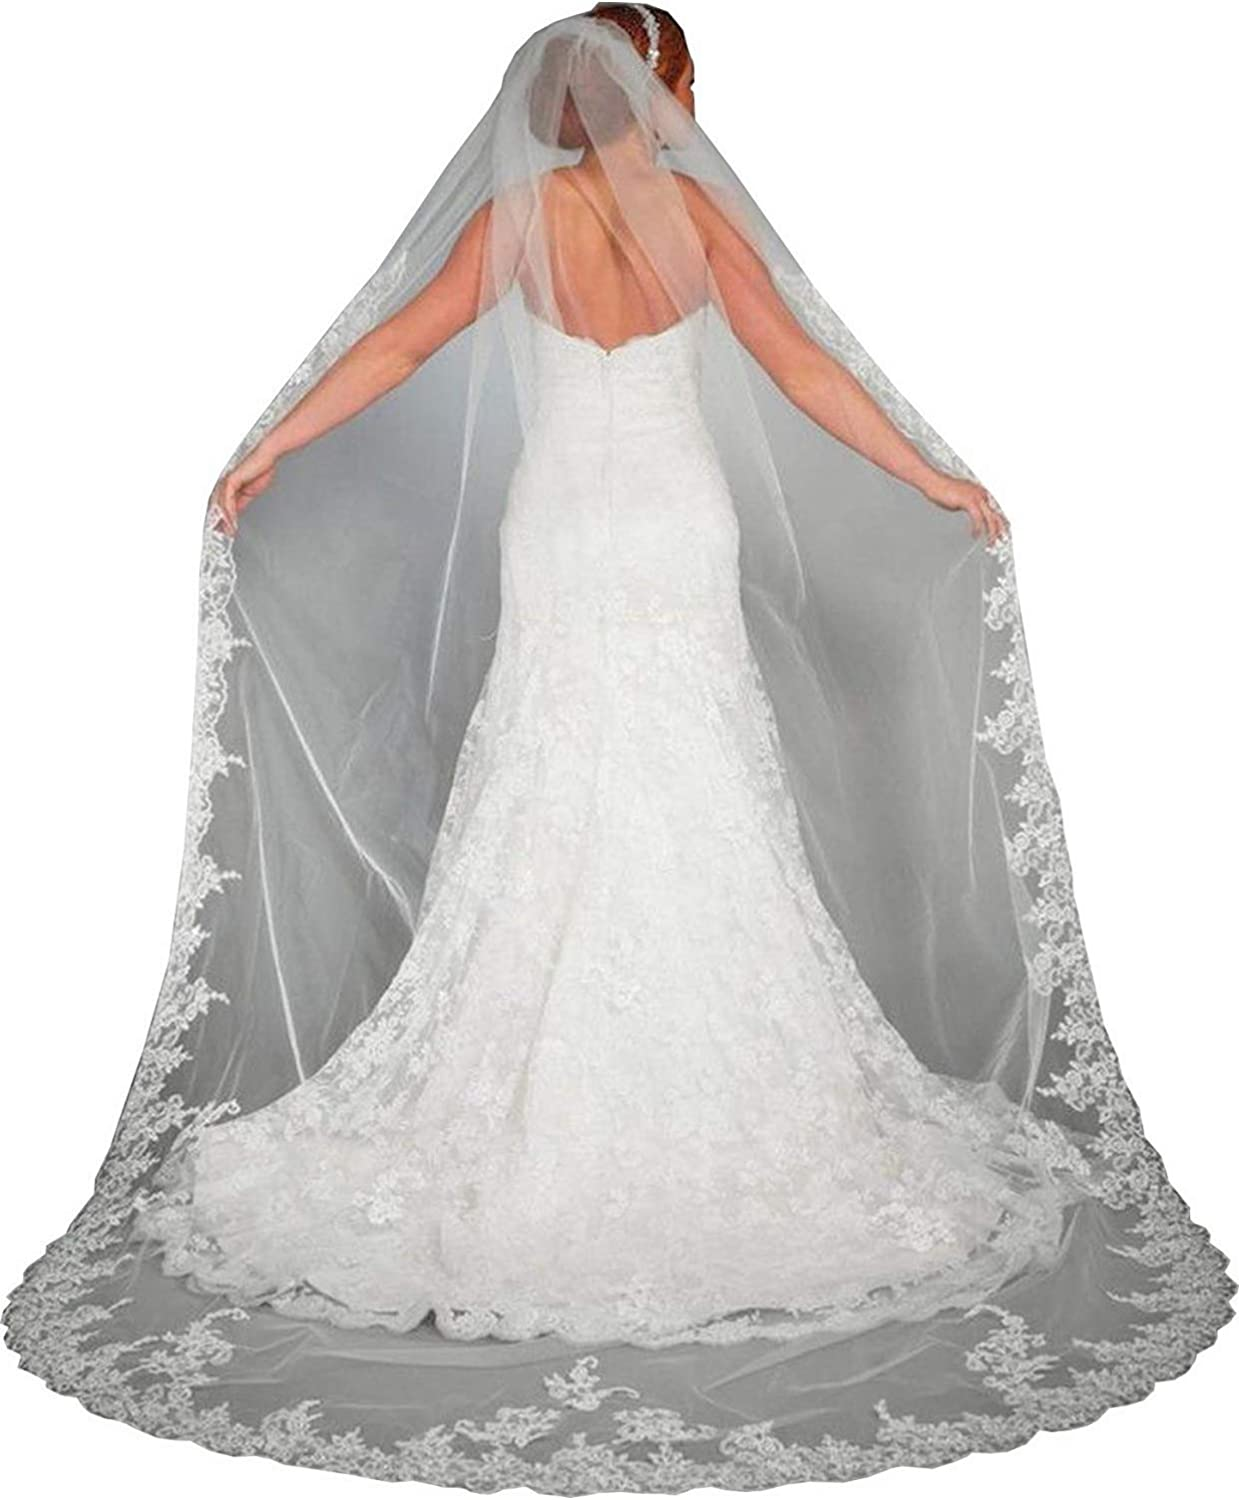 Cibelle Womens 1 Tier 3M Bridal Veils White Ivory Lace Wedding Veils with Metal Comb